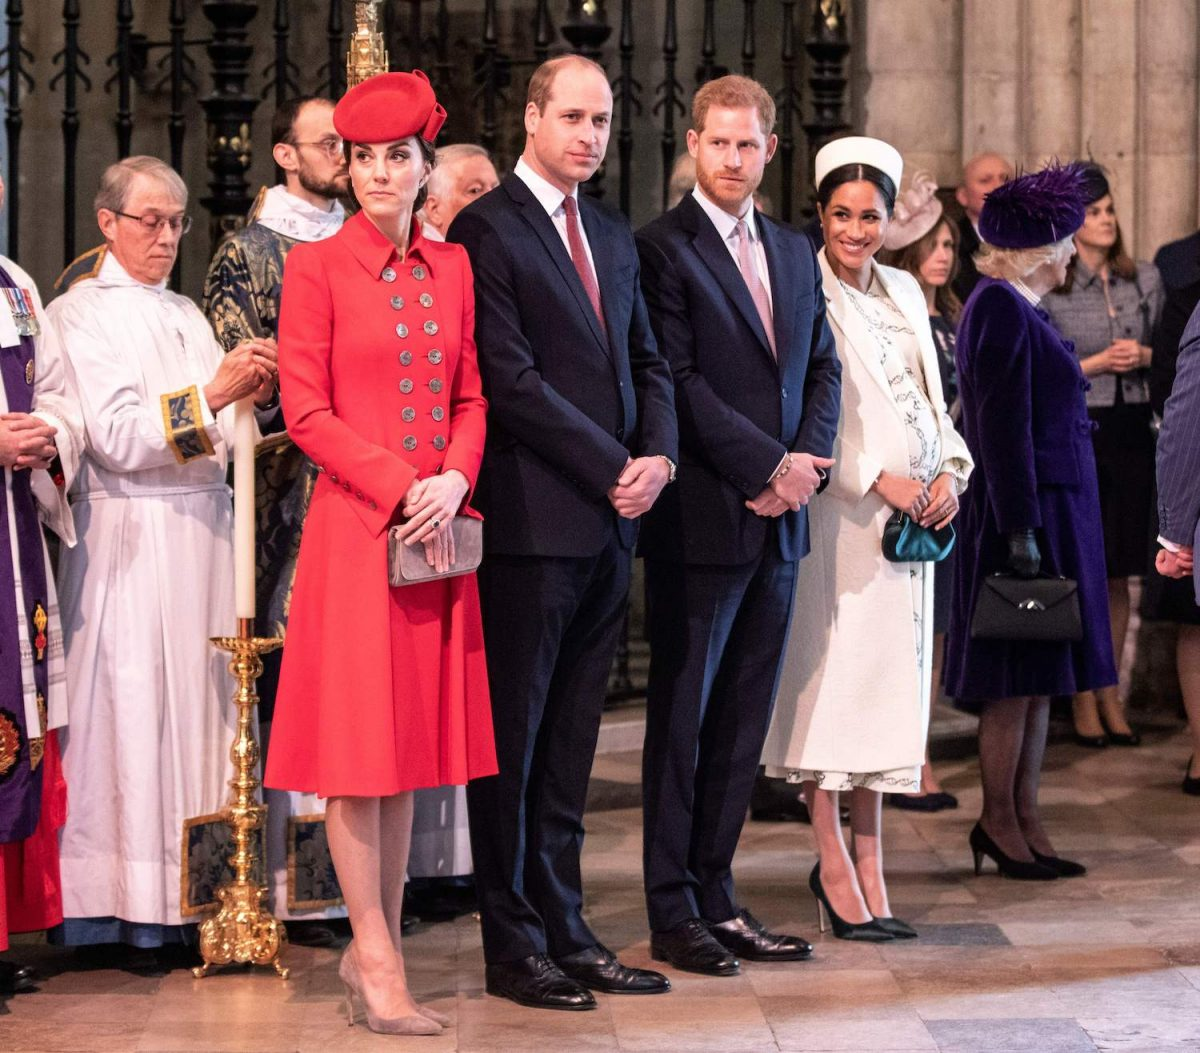 Kate Middleton, Prince William, Prince Harry, and Meghan Markle attend the Commonwealth Day service at Westminster Abbey in London on March 11, 2019